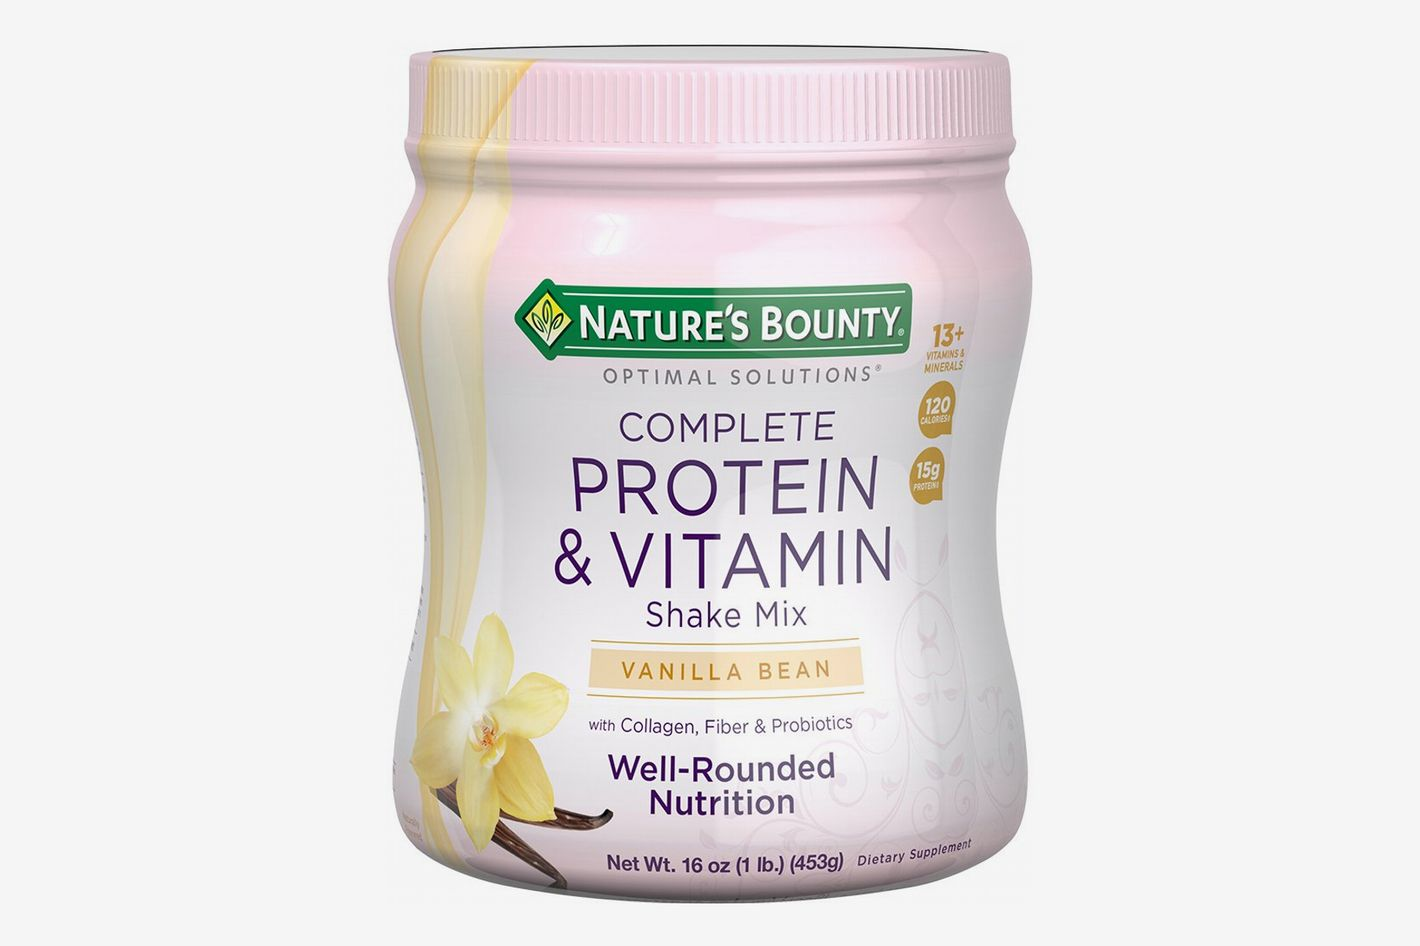 Nature's Bounty Optimal Solutions Protein Powder and Vitamin Supplement, Vanilla Bean